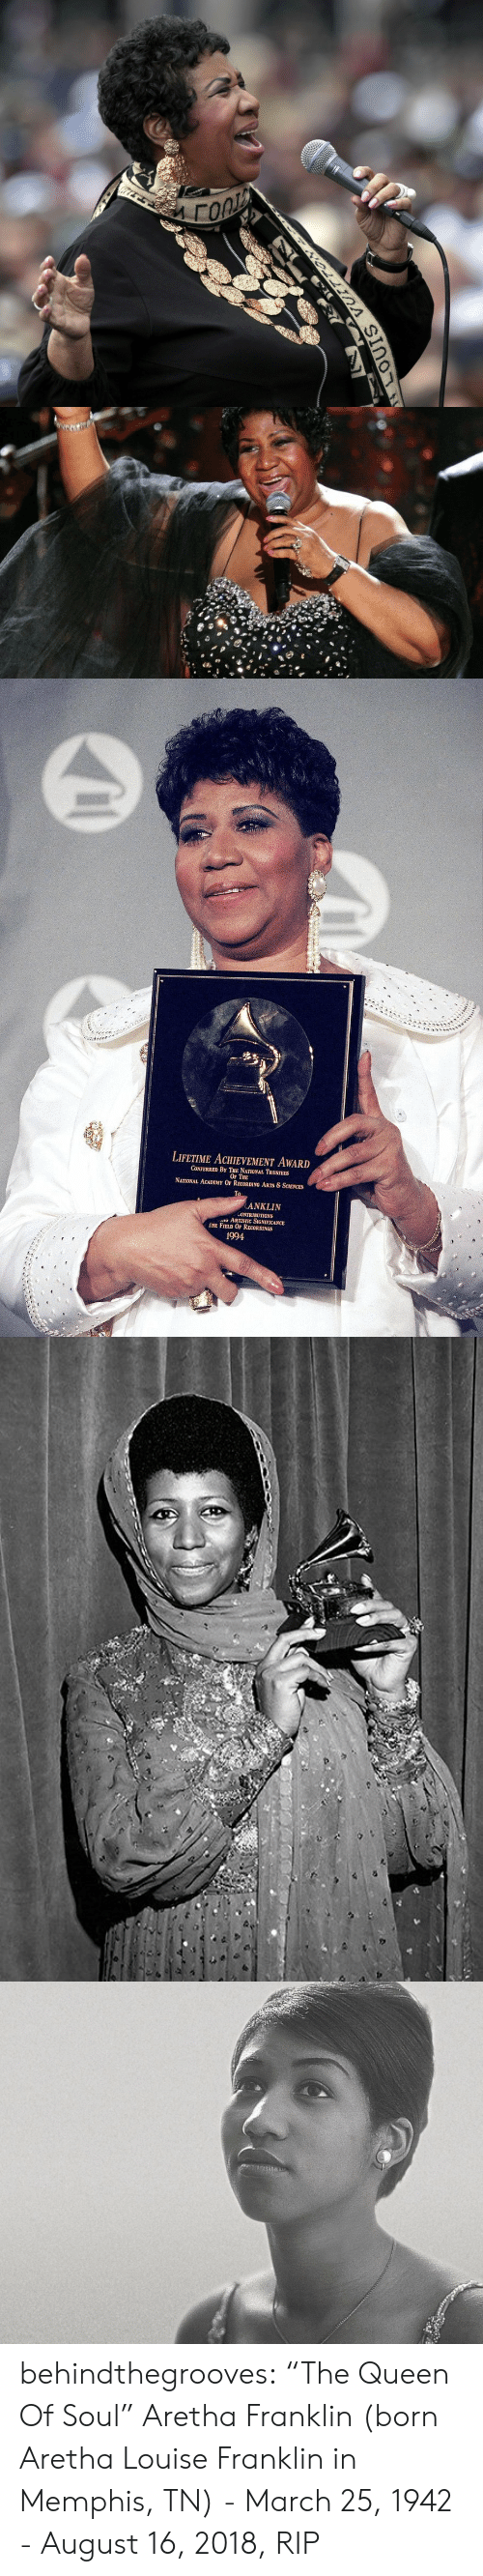 """Aretha Franklin: LIFETIME ACHEVEMENT AWARD  CONFERRED BY THE NATIONAL TRUSTEES  OF THE  NATIONAL ACADEMY OF RECORDING ARTS & SCIENCES  ANKLIN  ONTRIBUTIONS  ARTISTIC SIGNIFICANCE  HE FIELD OF RECORDINGS  1994 behindthegrooves:    """"The Queen Of Soul"""" Aretha Franklin (born Aretha Louise Franklin in Memphis, TN) - March 25, 1942 - August 16, 2018, RIP"""